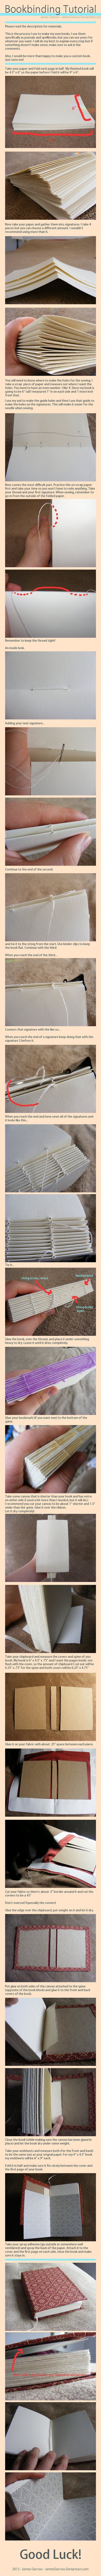 Bookbinding Tutorial for the book we wish to make.